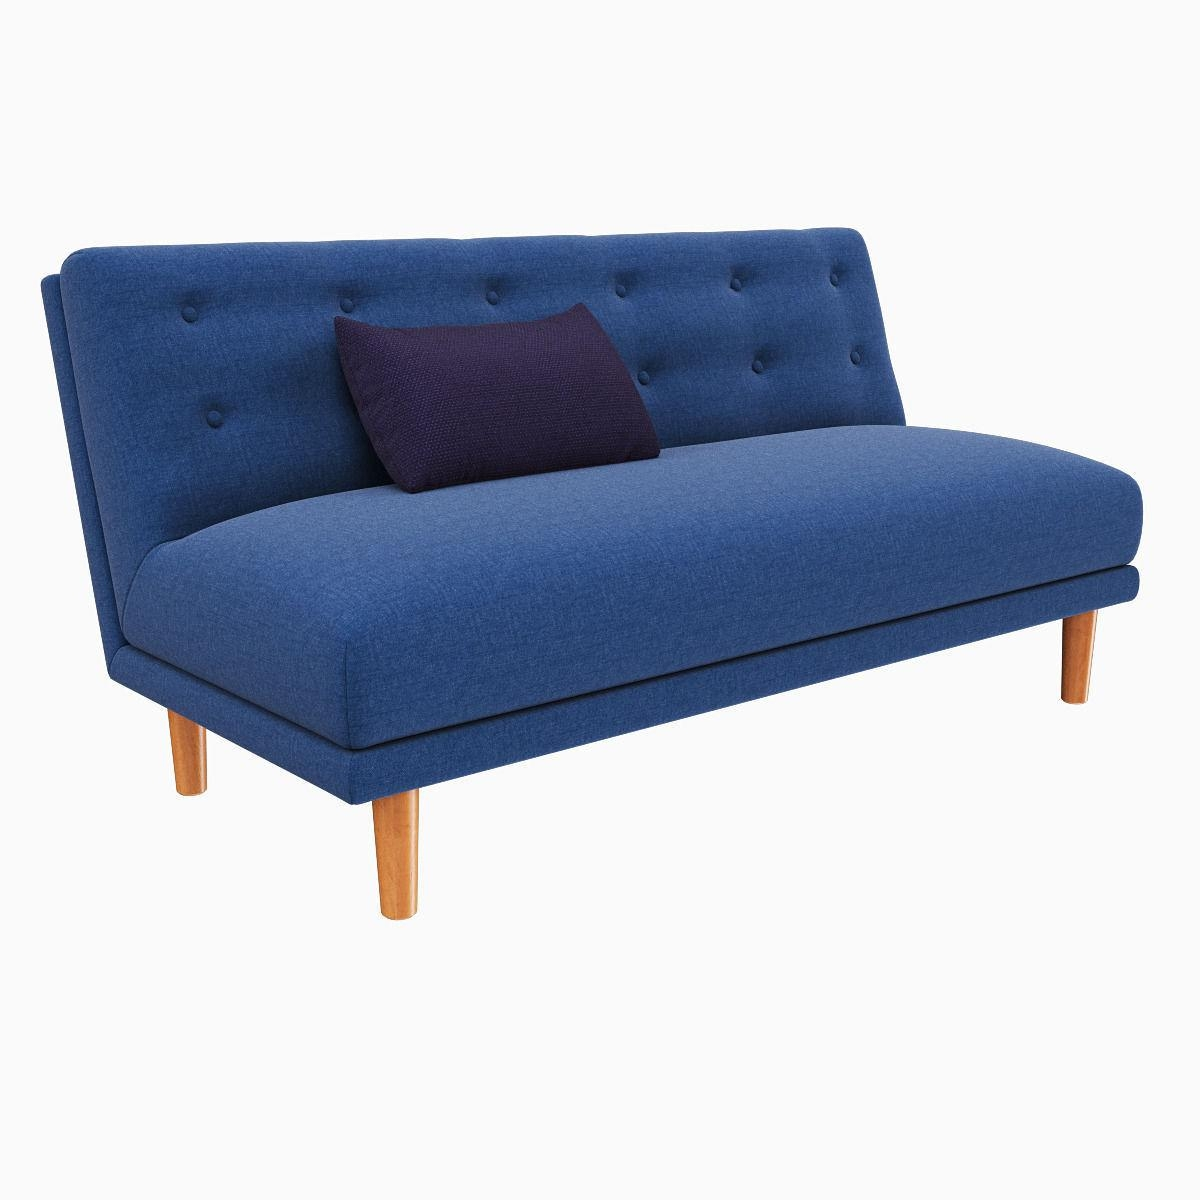 West Elm Rounded Retro Armless Sofa 3D Model Max Obj Fbx Mtl Regarding Rounded Sofa (Image 20 of 20)